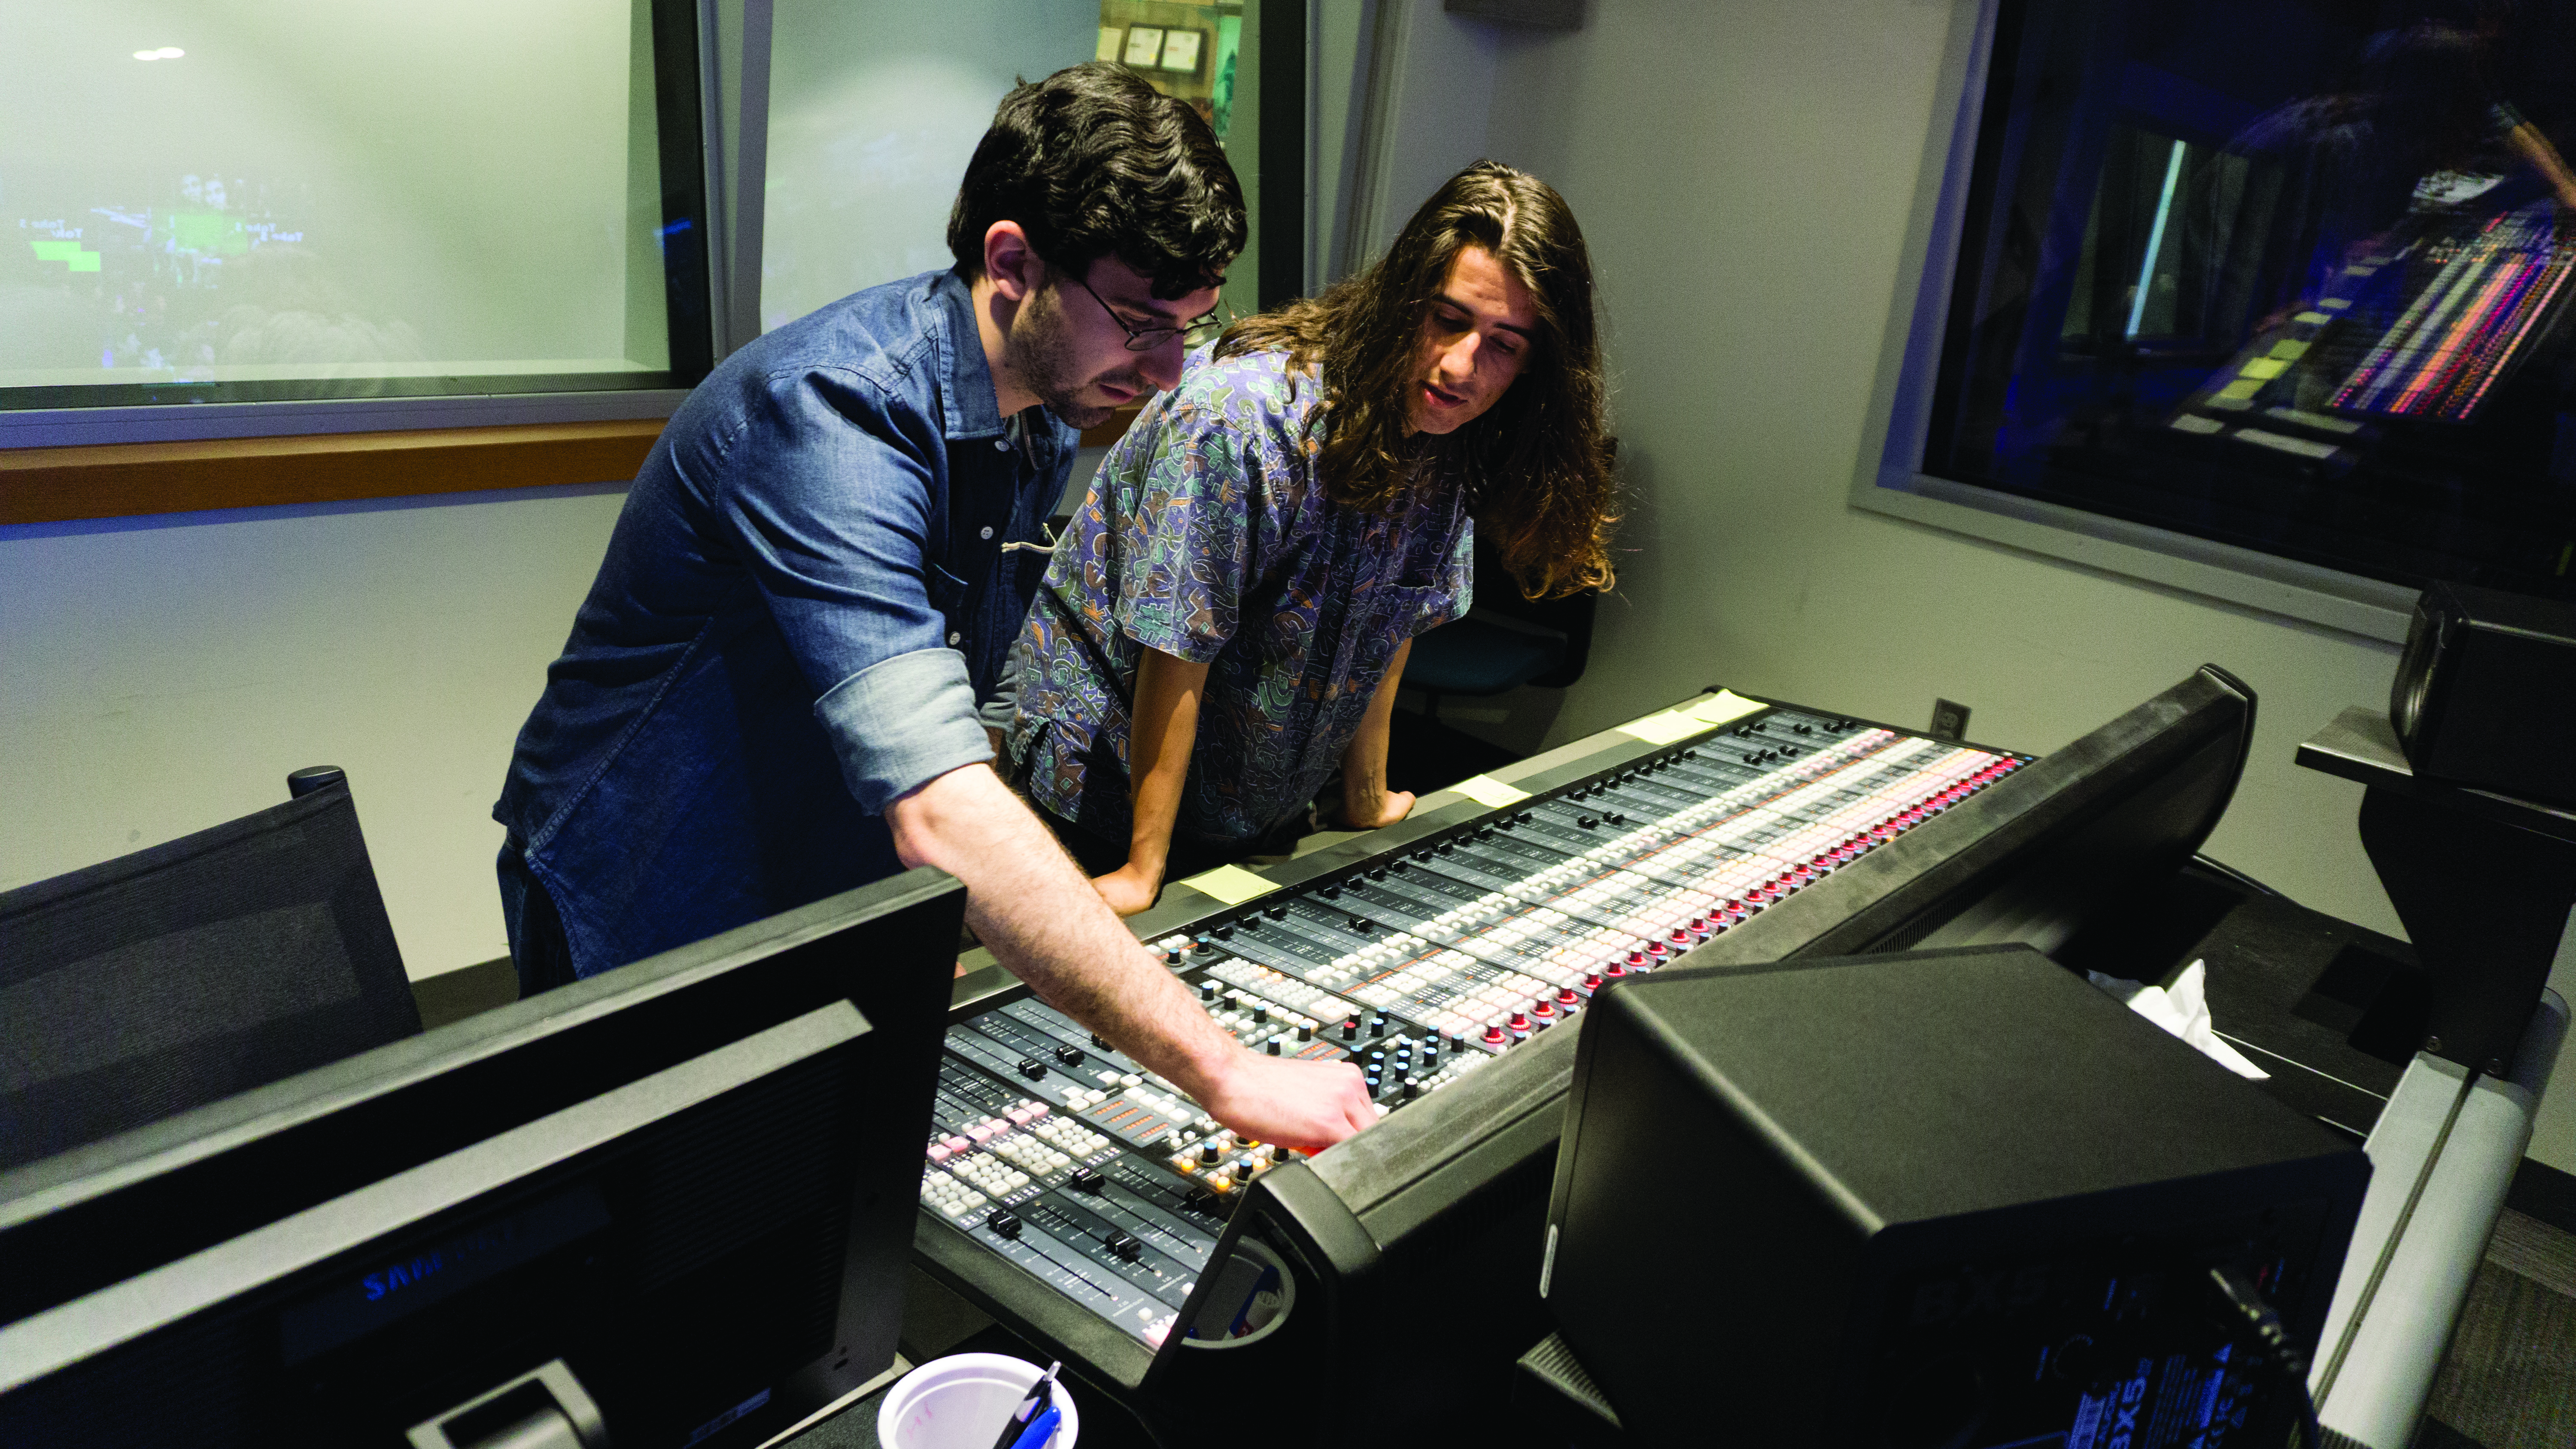 Students working on equipment in the studio